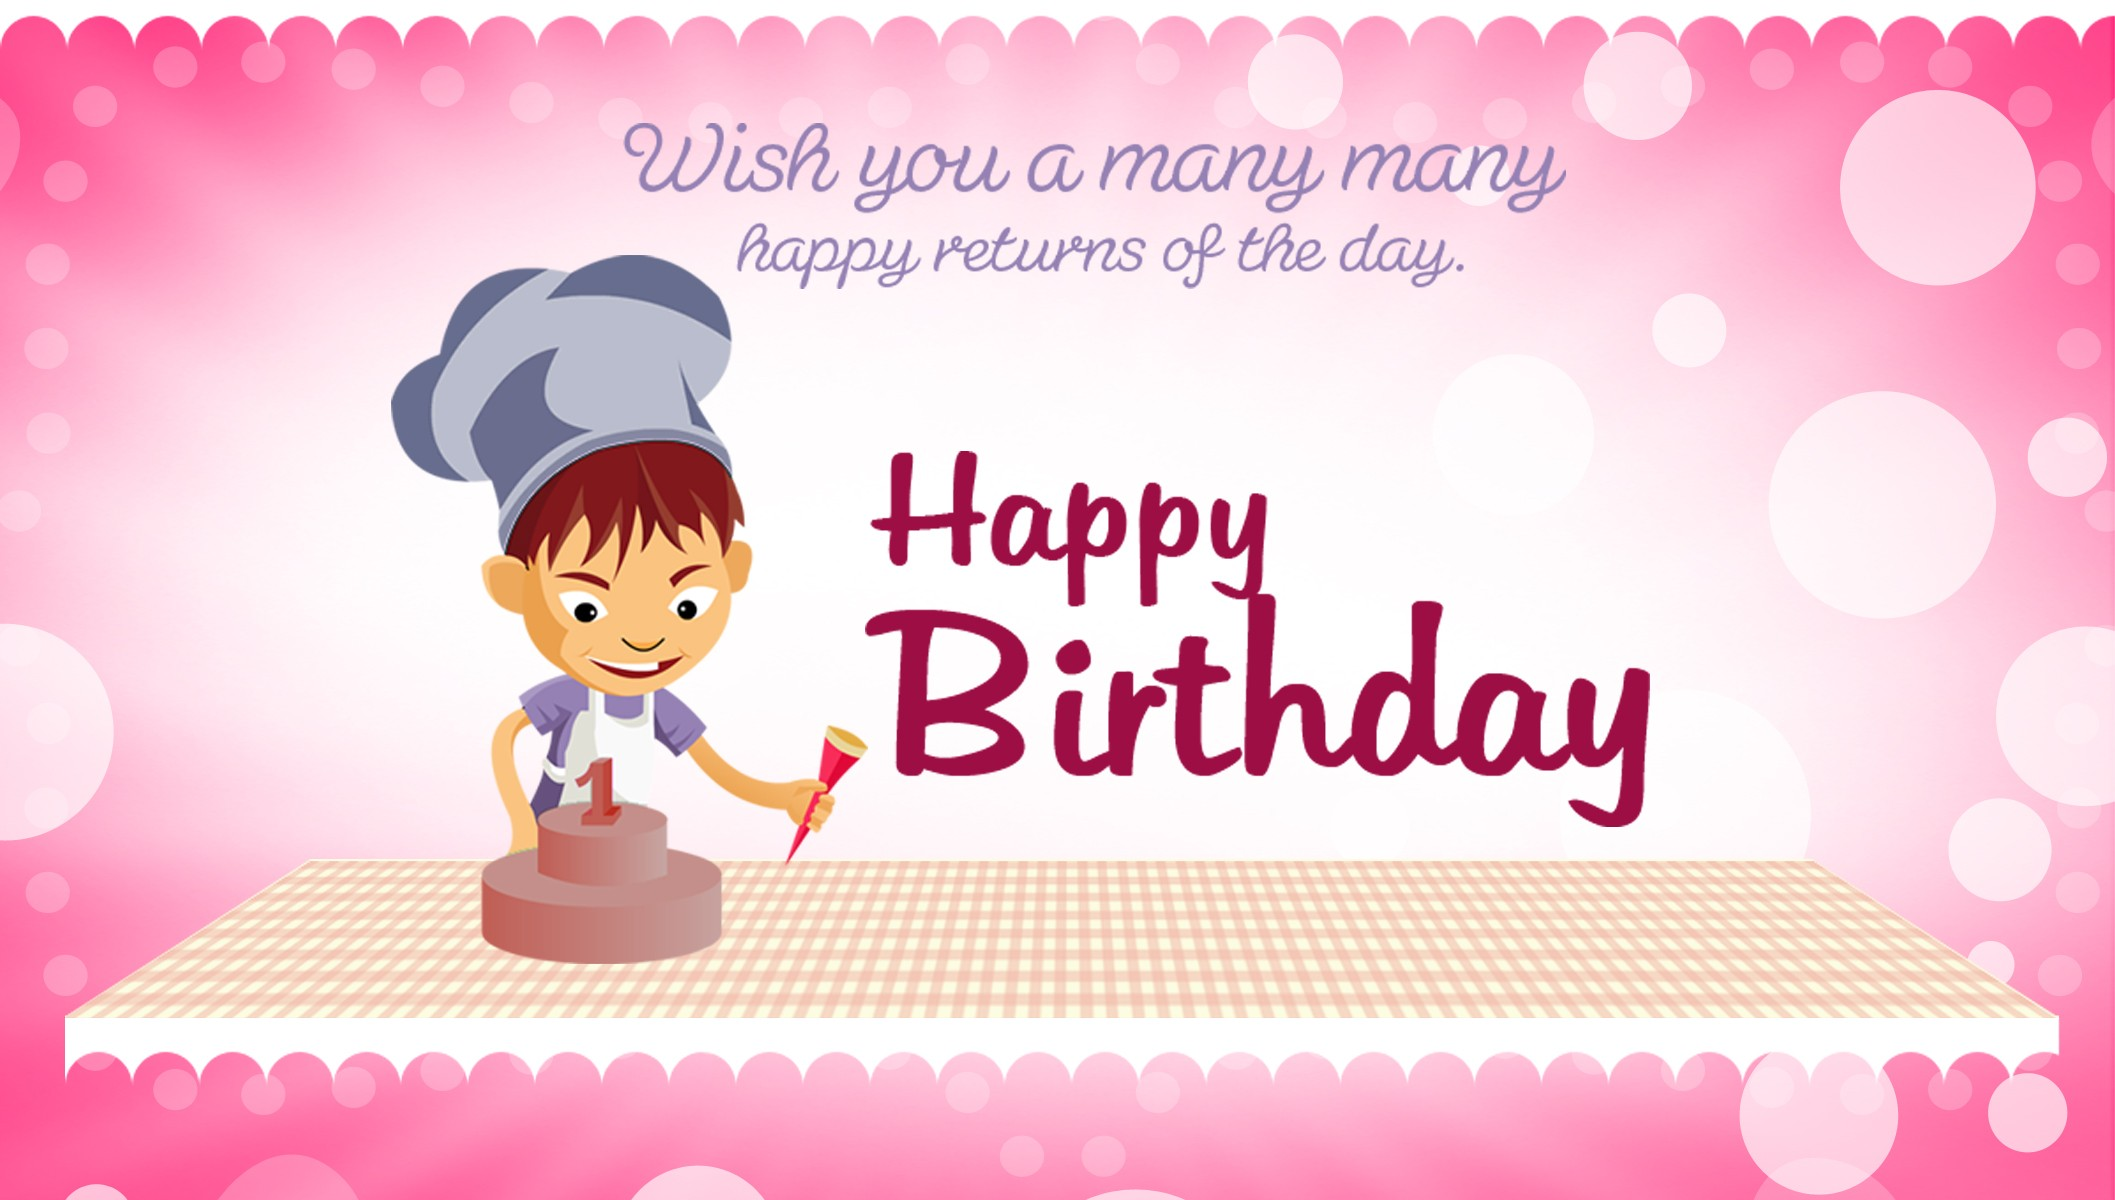 Birthday Ecards Photo ~ Happy birthday wishes messages for boyfriend and girlfriend daily roabox